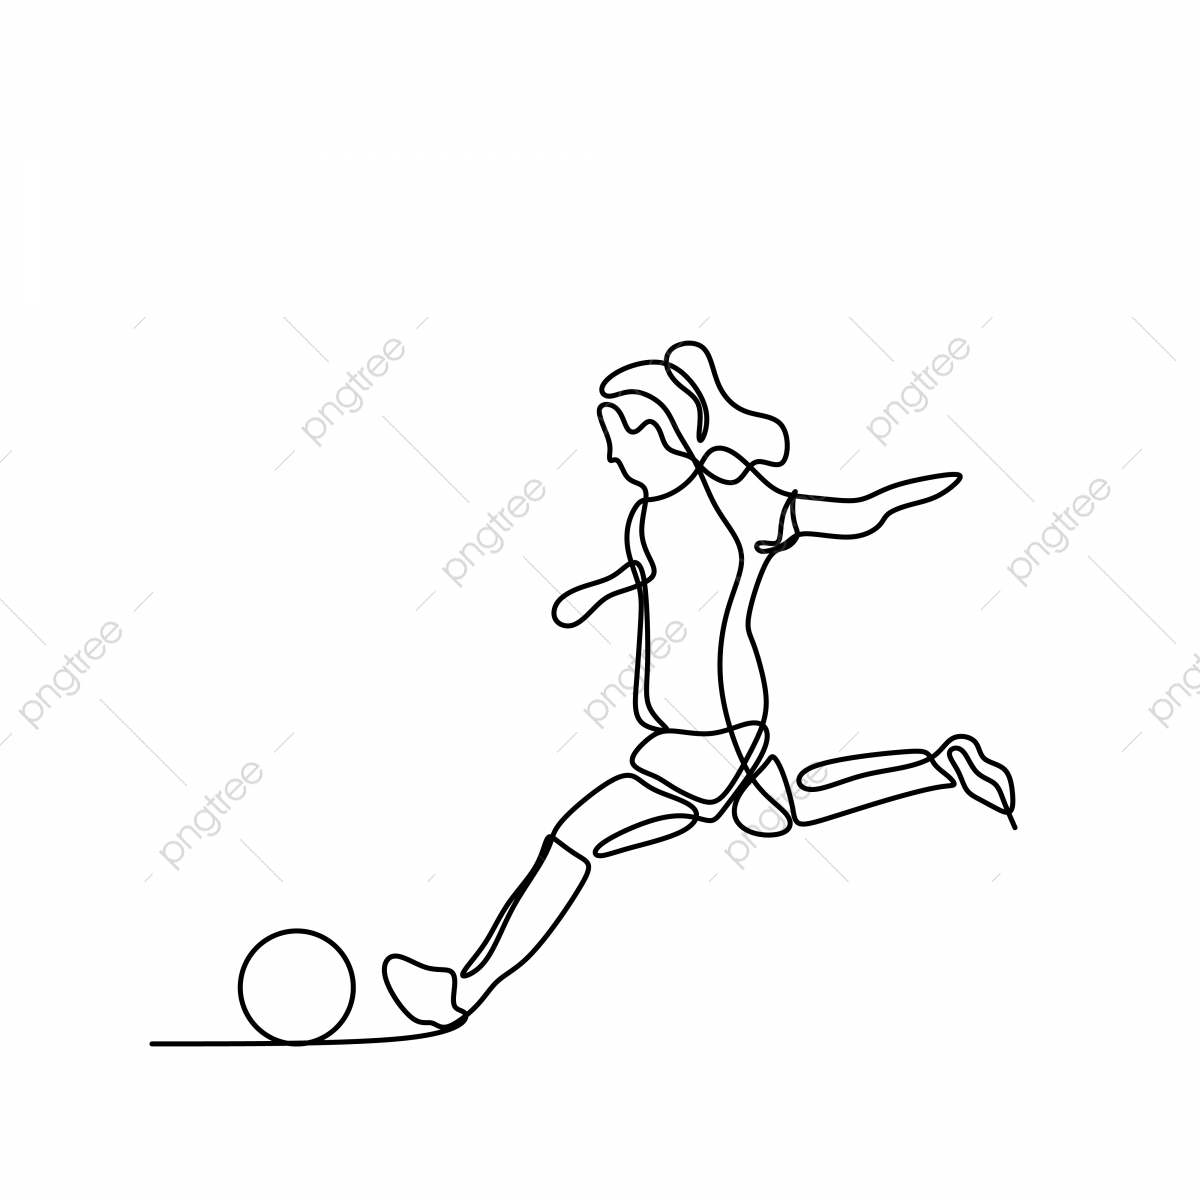 Women Soccer Player Continuous Line Art Drawing Kick Sport Play Png And Vector With Transparent Background For Free Download